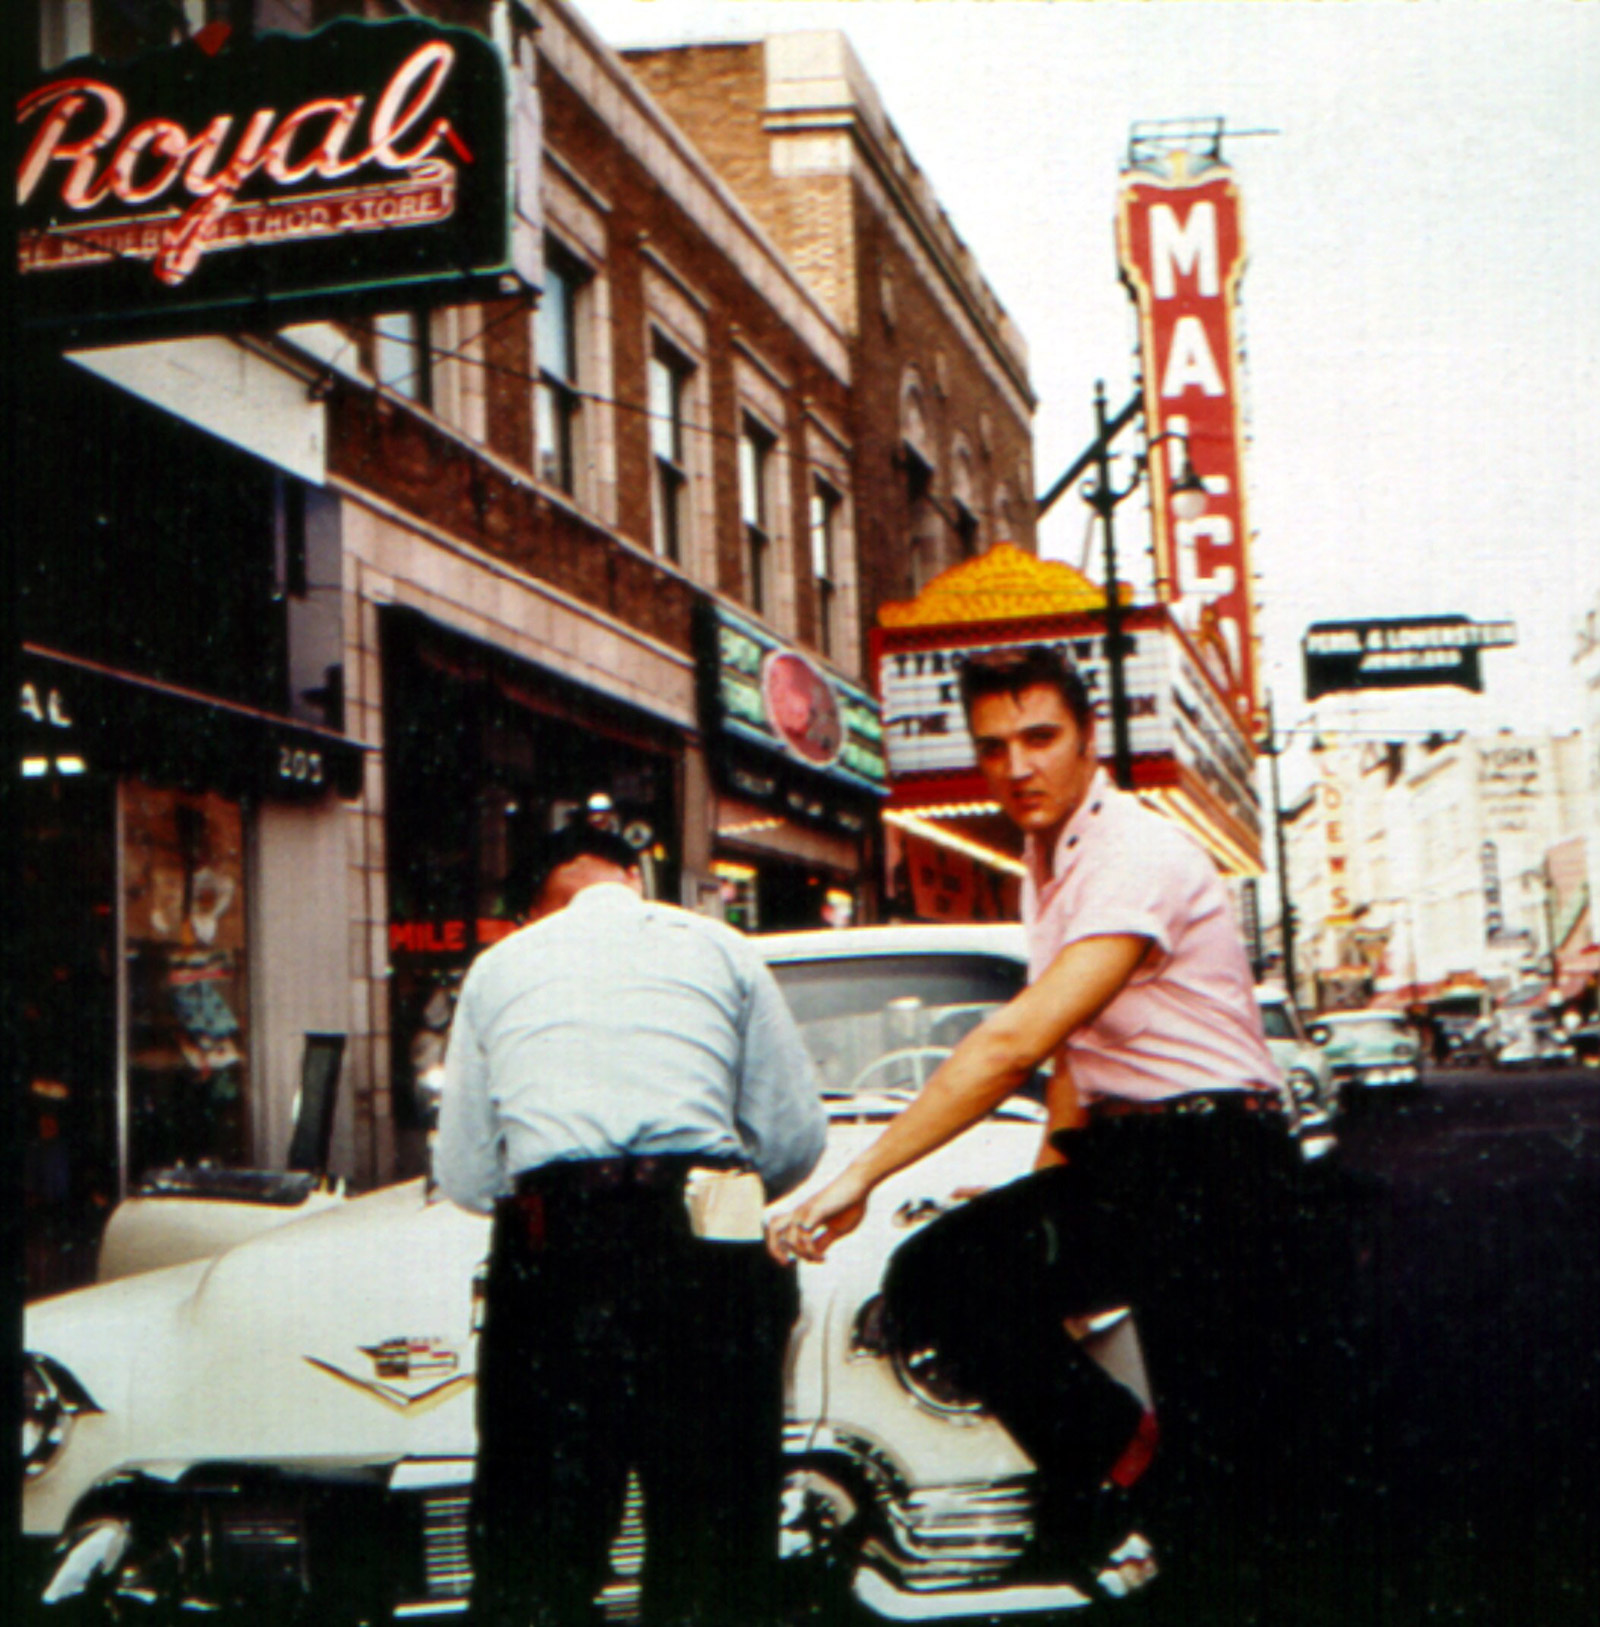 Elvis tour of Memphis